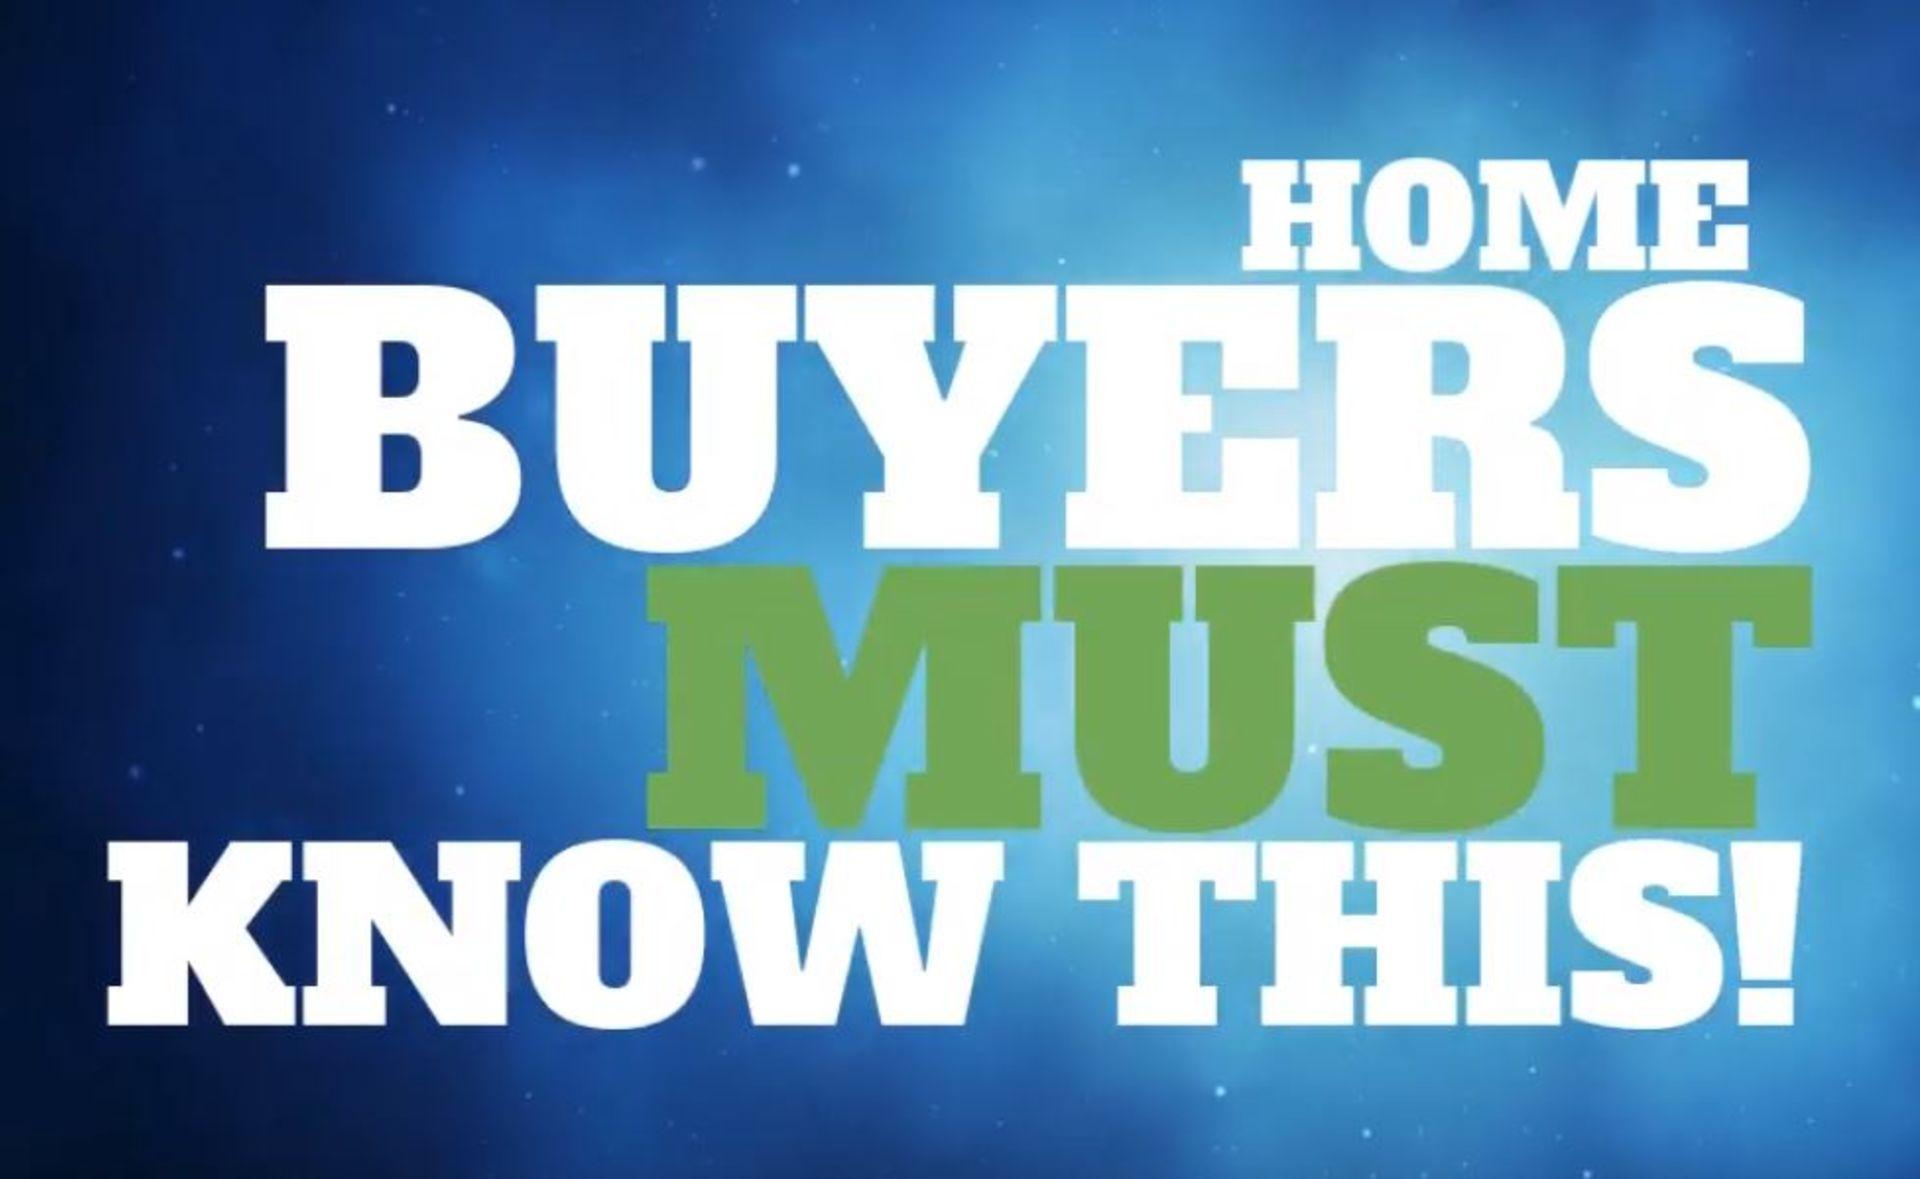 Home buyers must know this!